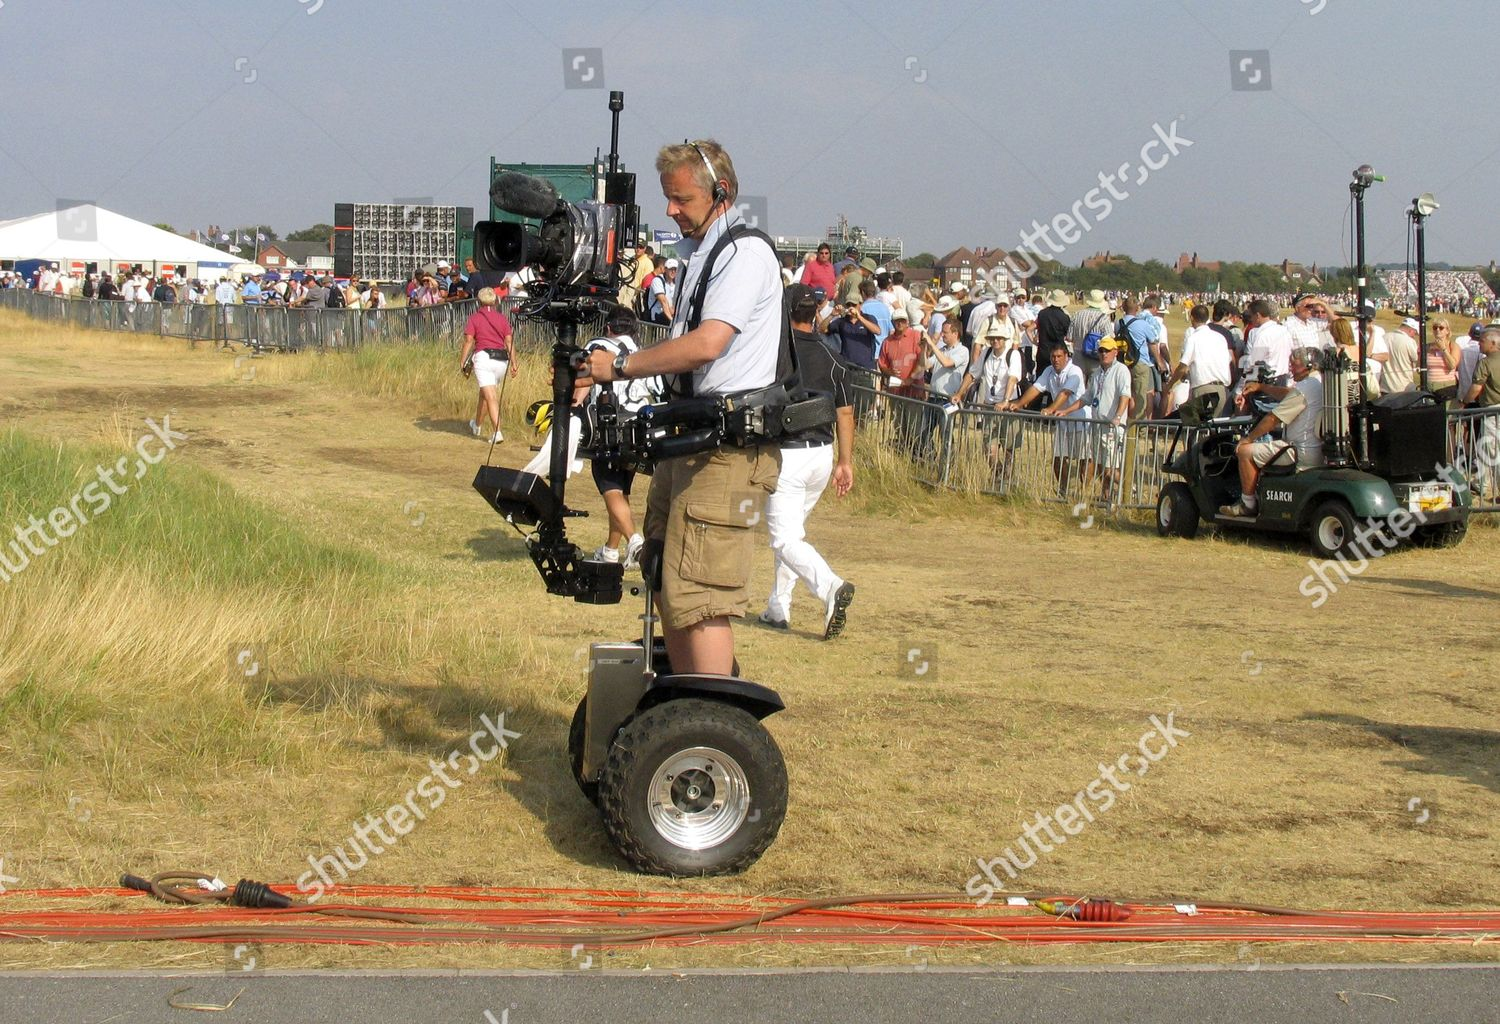 The Open Golf Championship At Royal Liverpool Club Hoylake Wirral Britain Stock Image By Charles Knight For Editorial Use Jul 21 2006